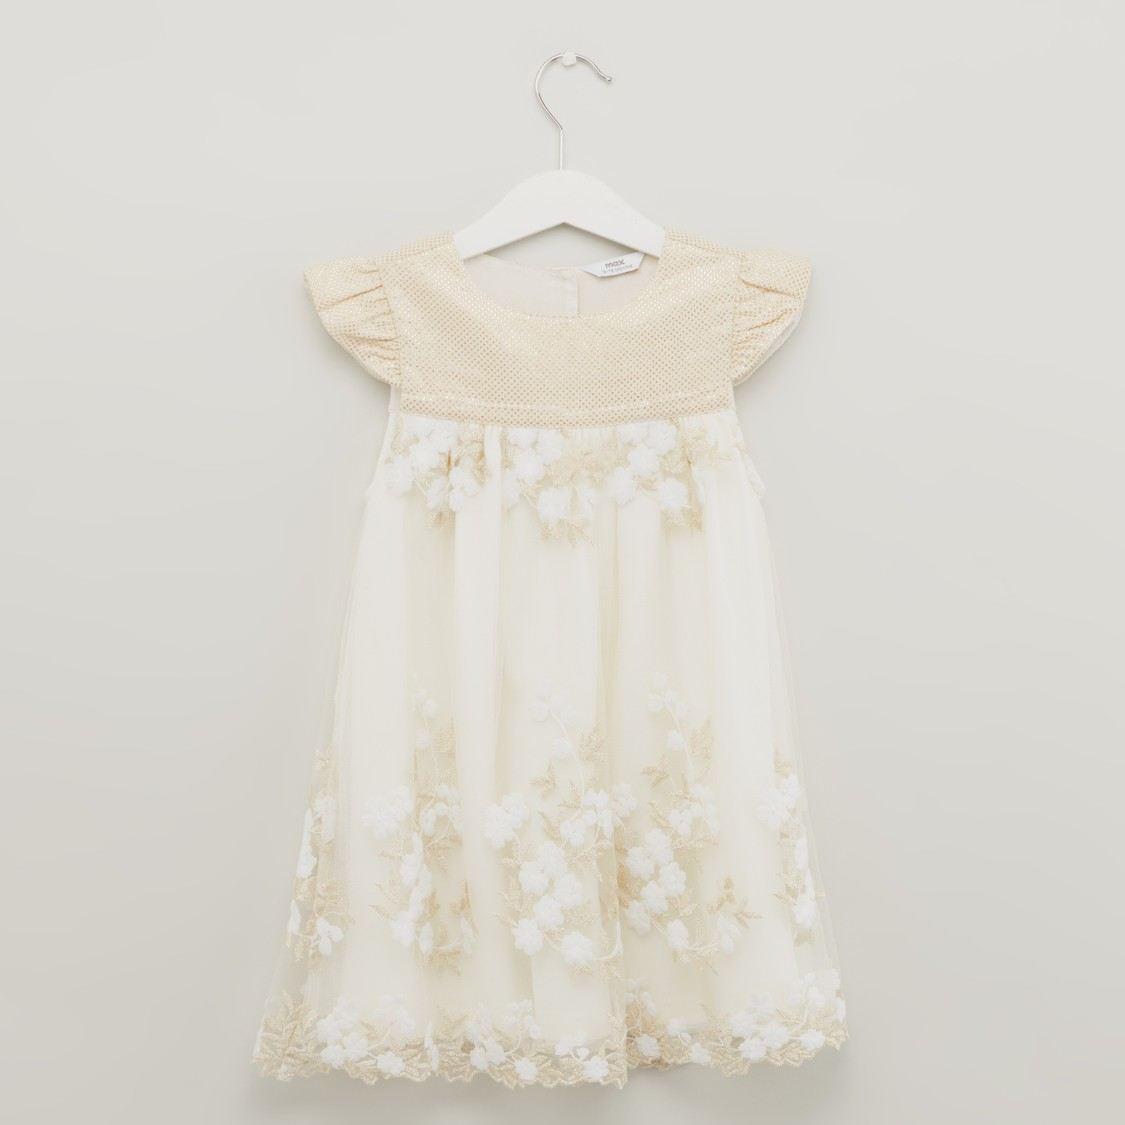 Floral Embroidered Dress with Puff Sleeves